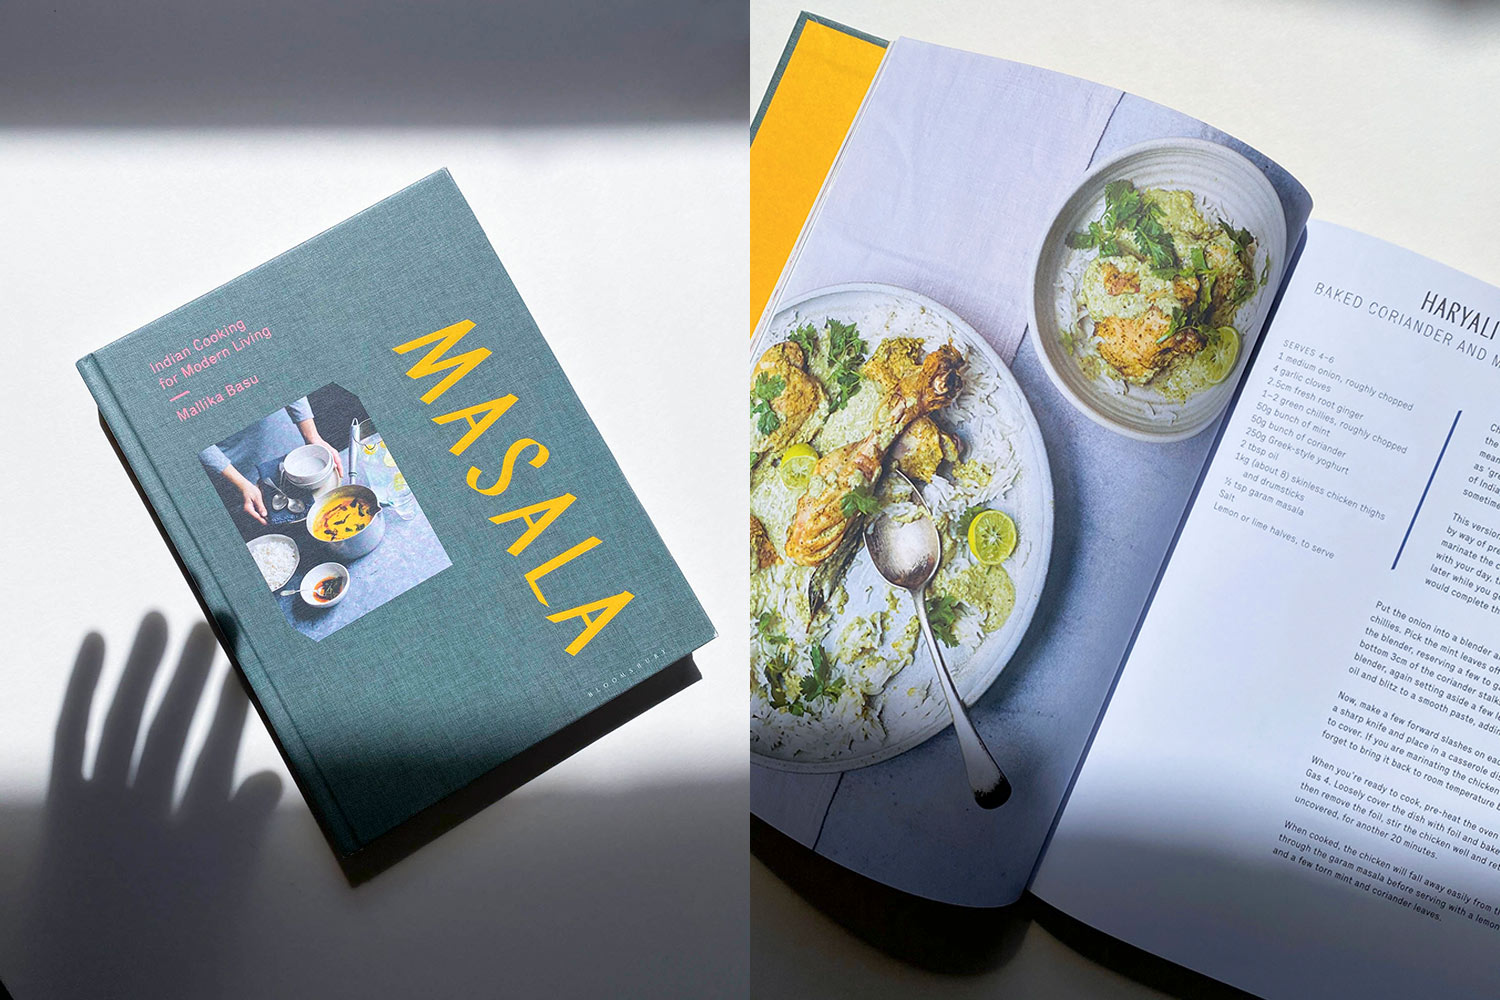 The Best Cookbooks: Masala, Indian Cuisine for Modern Living by Mallika Basu